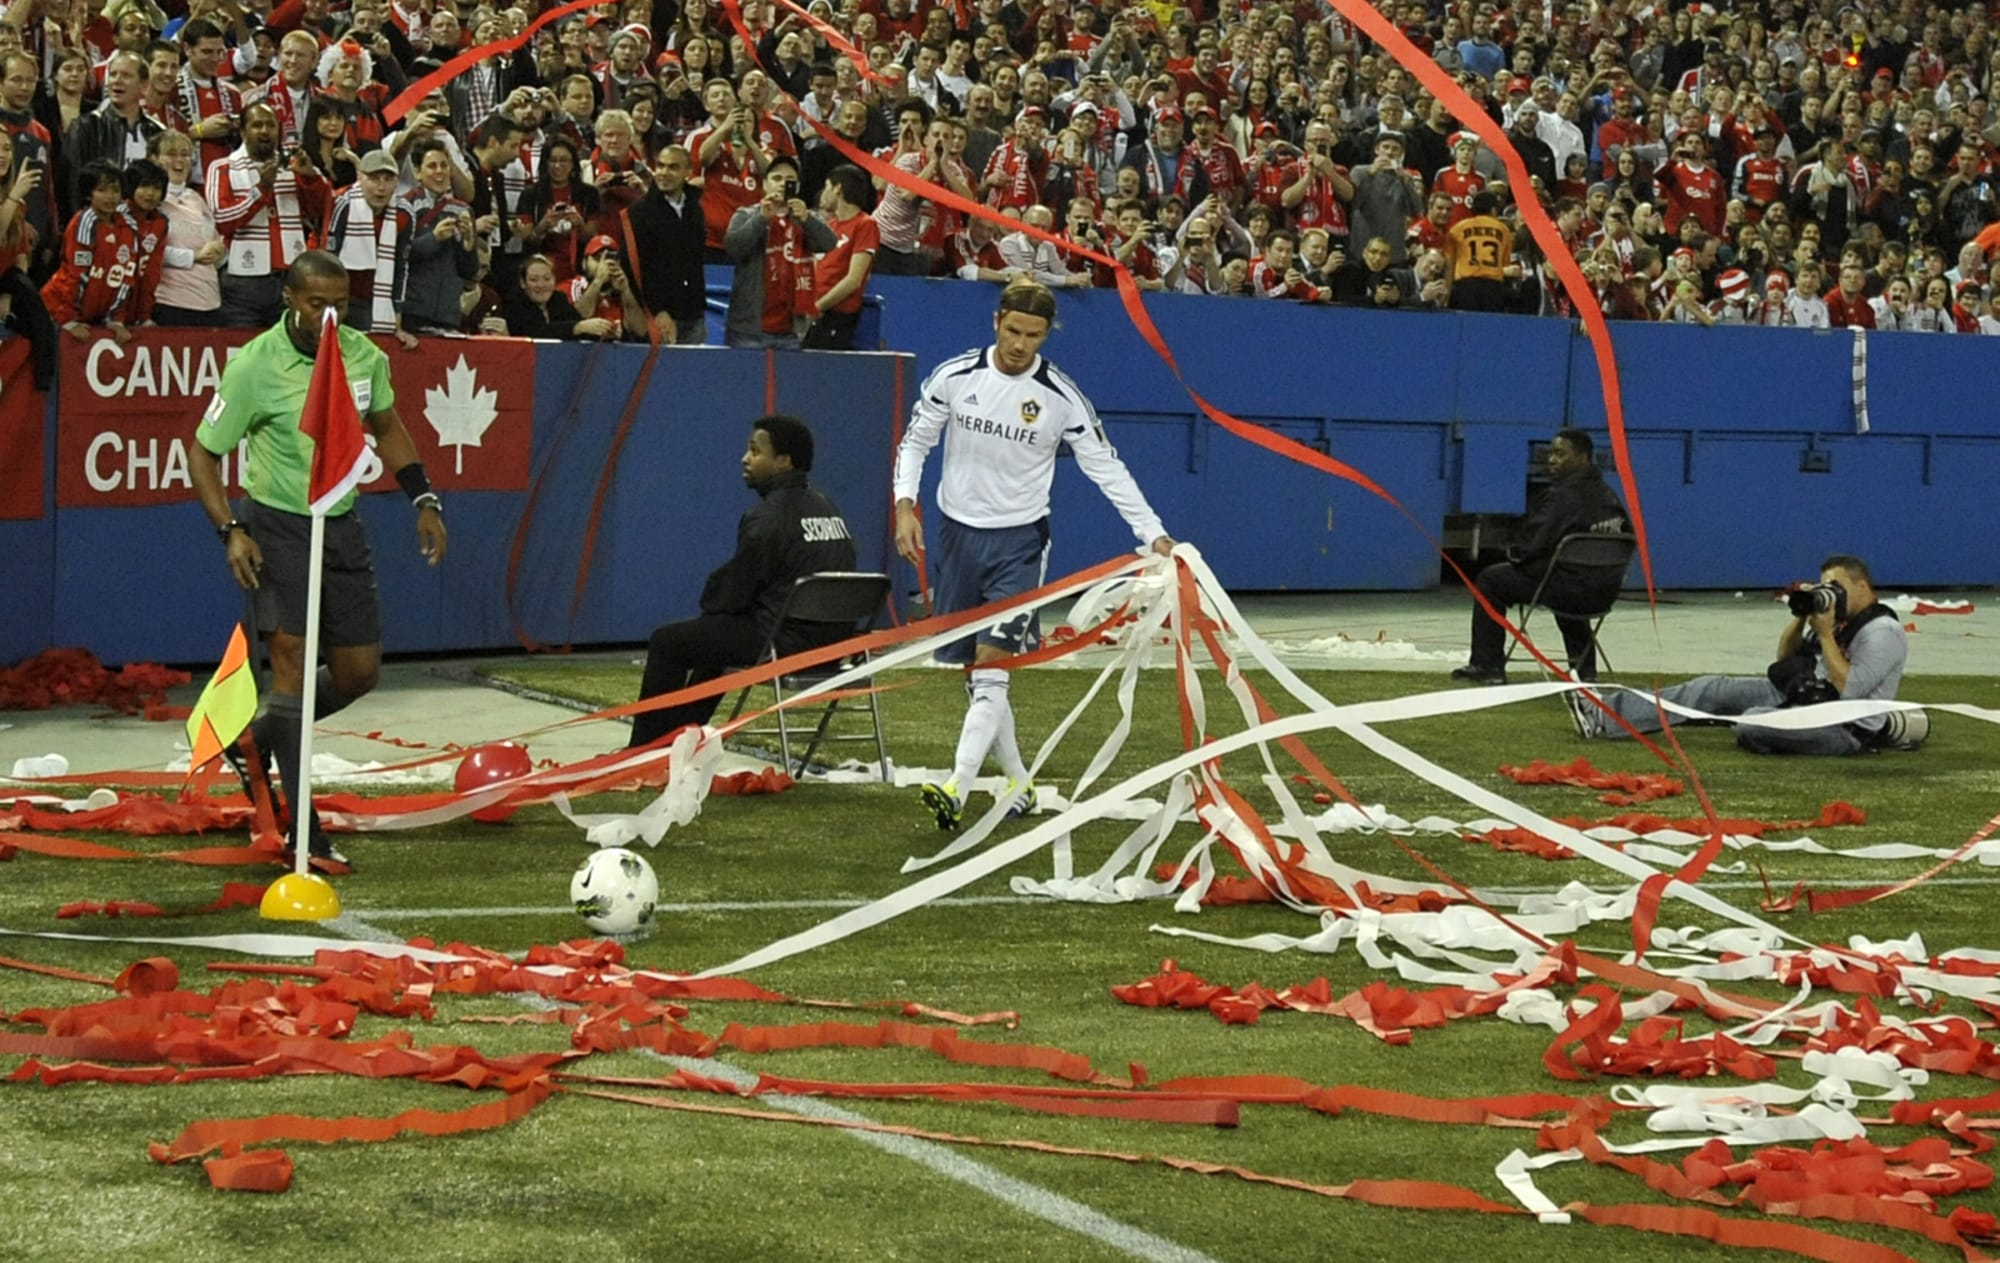 Toronto Sports: 6 times fans crossed the line (on camera)